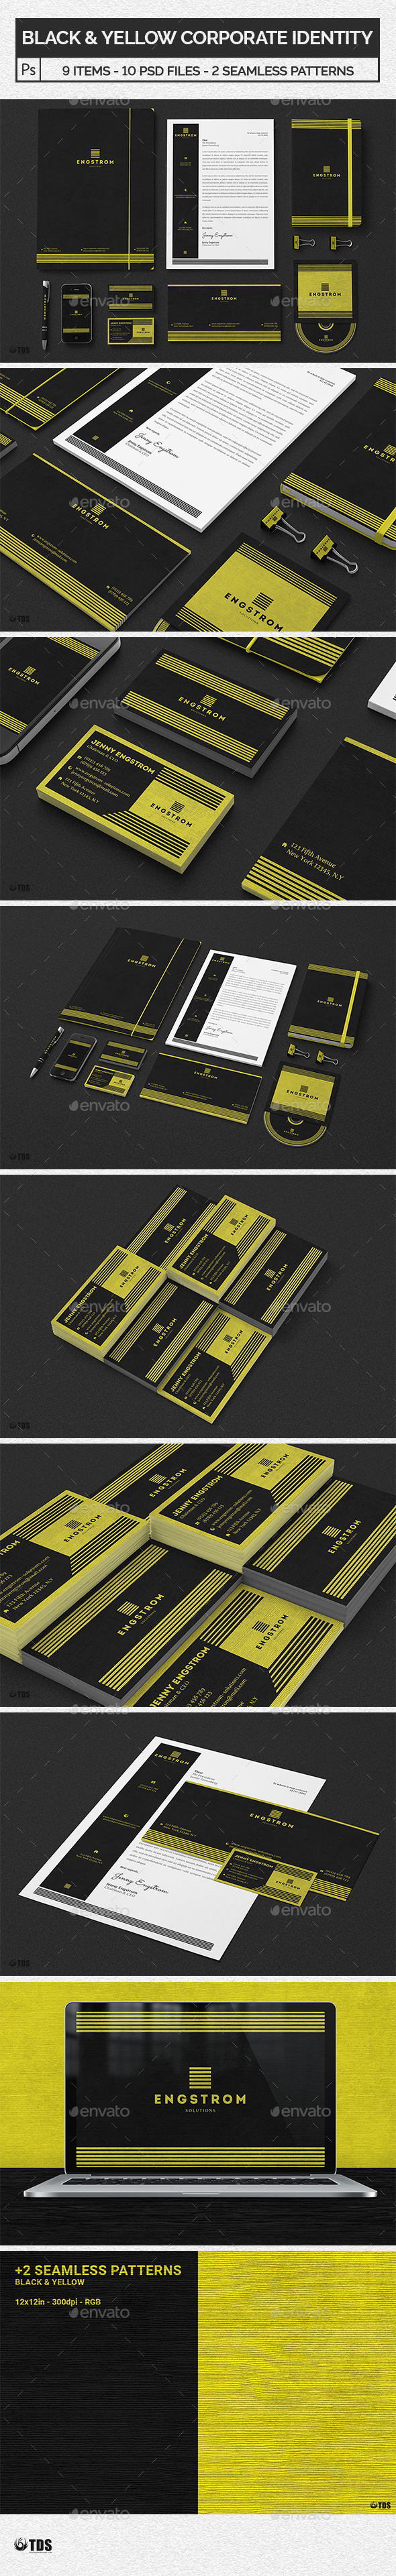 Black and Yellow Corporate Identity Template - Stationery Print Templates